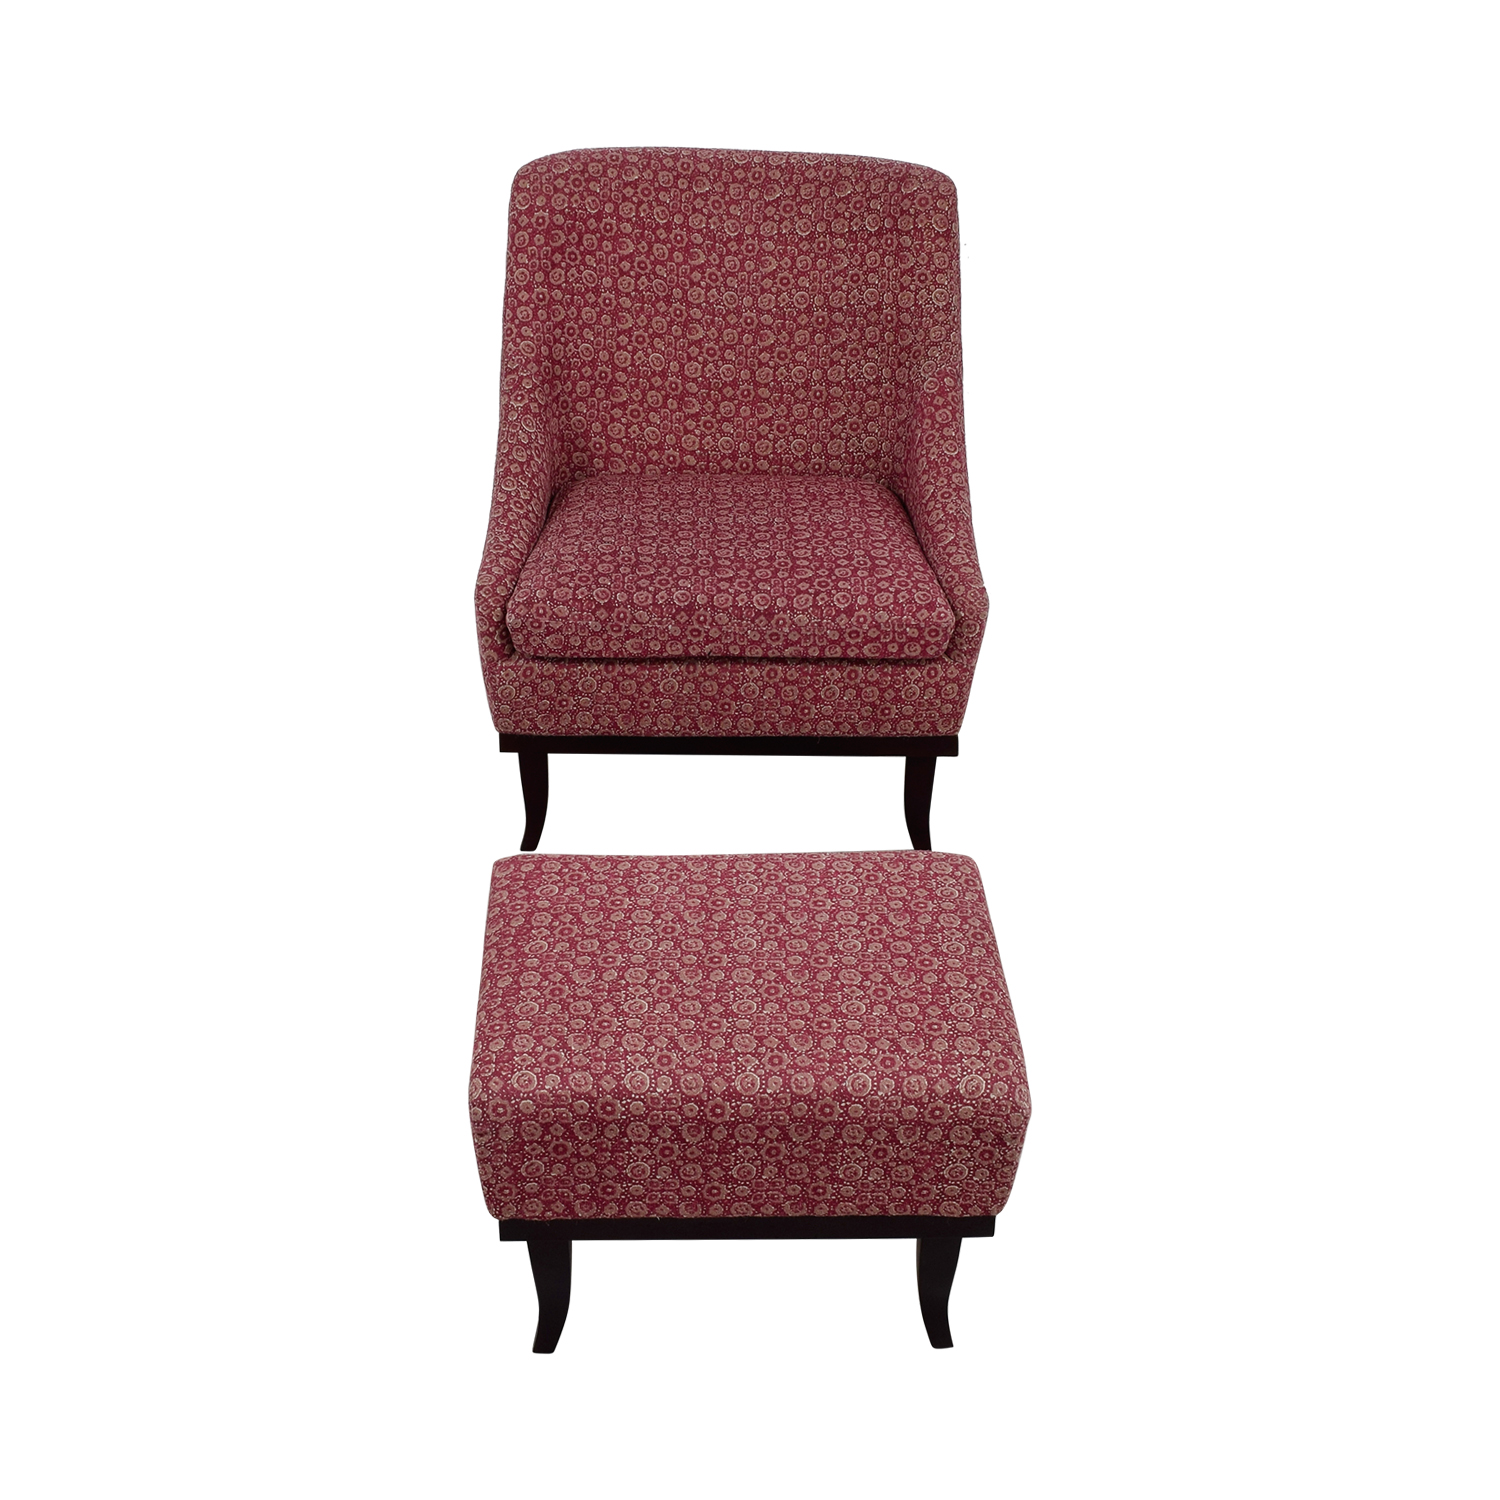 Manor and Mews Manor and Mews Cary Burgundy Armchair with Footstool Accent Chairs